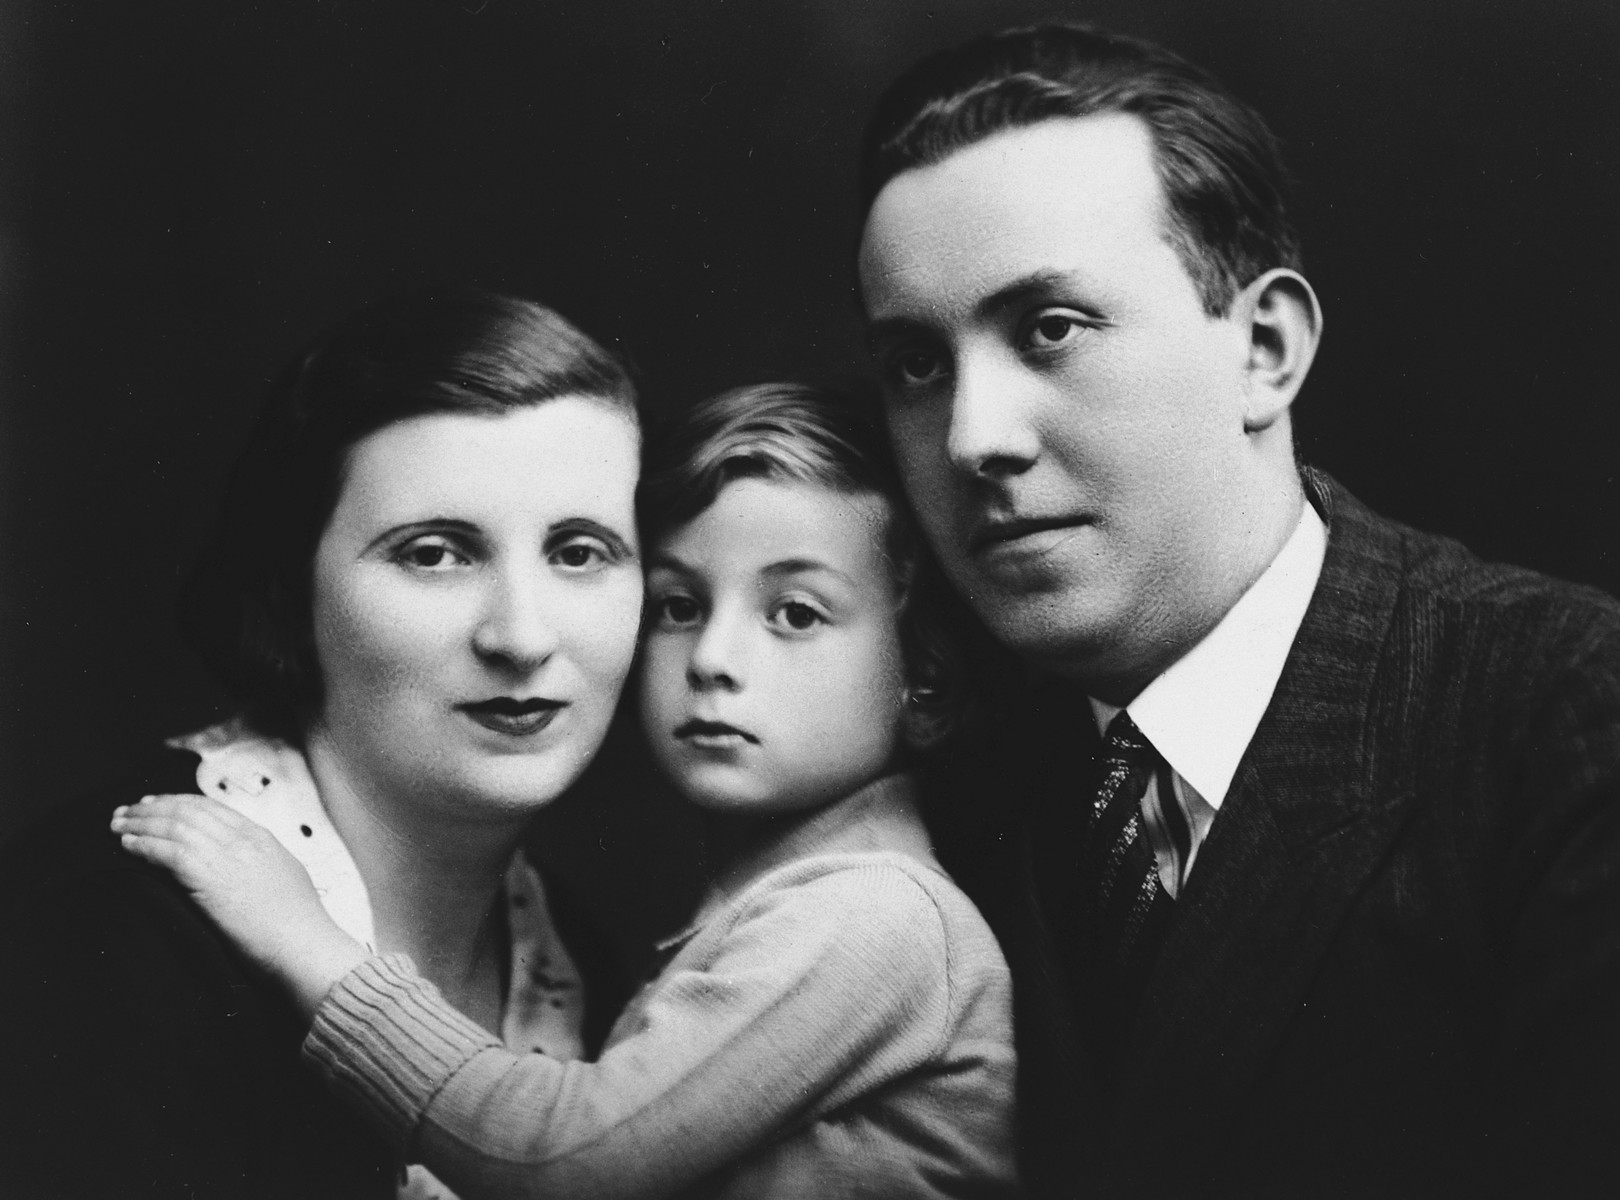 Studio portrait of the family of Sara Prawer Laskier, the donor's aunt.  Pictured are Sara Prawer Laskier, her son Sewek Osjasz and husband, Israel Srulek Laskier.  All three perished in Auschwitz.  Sewek died after throwing himself on the electrified fence.